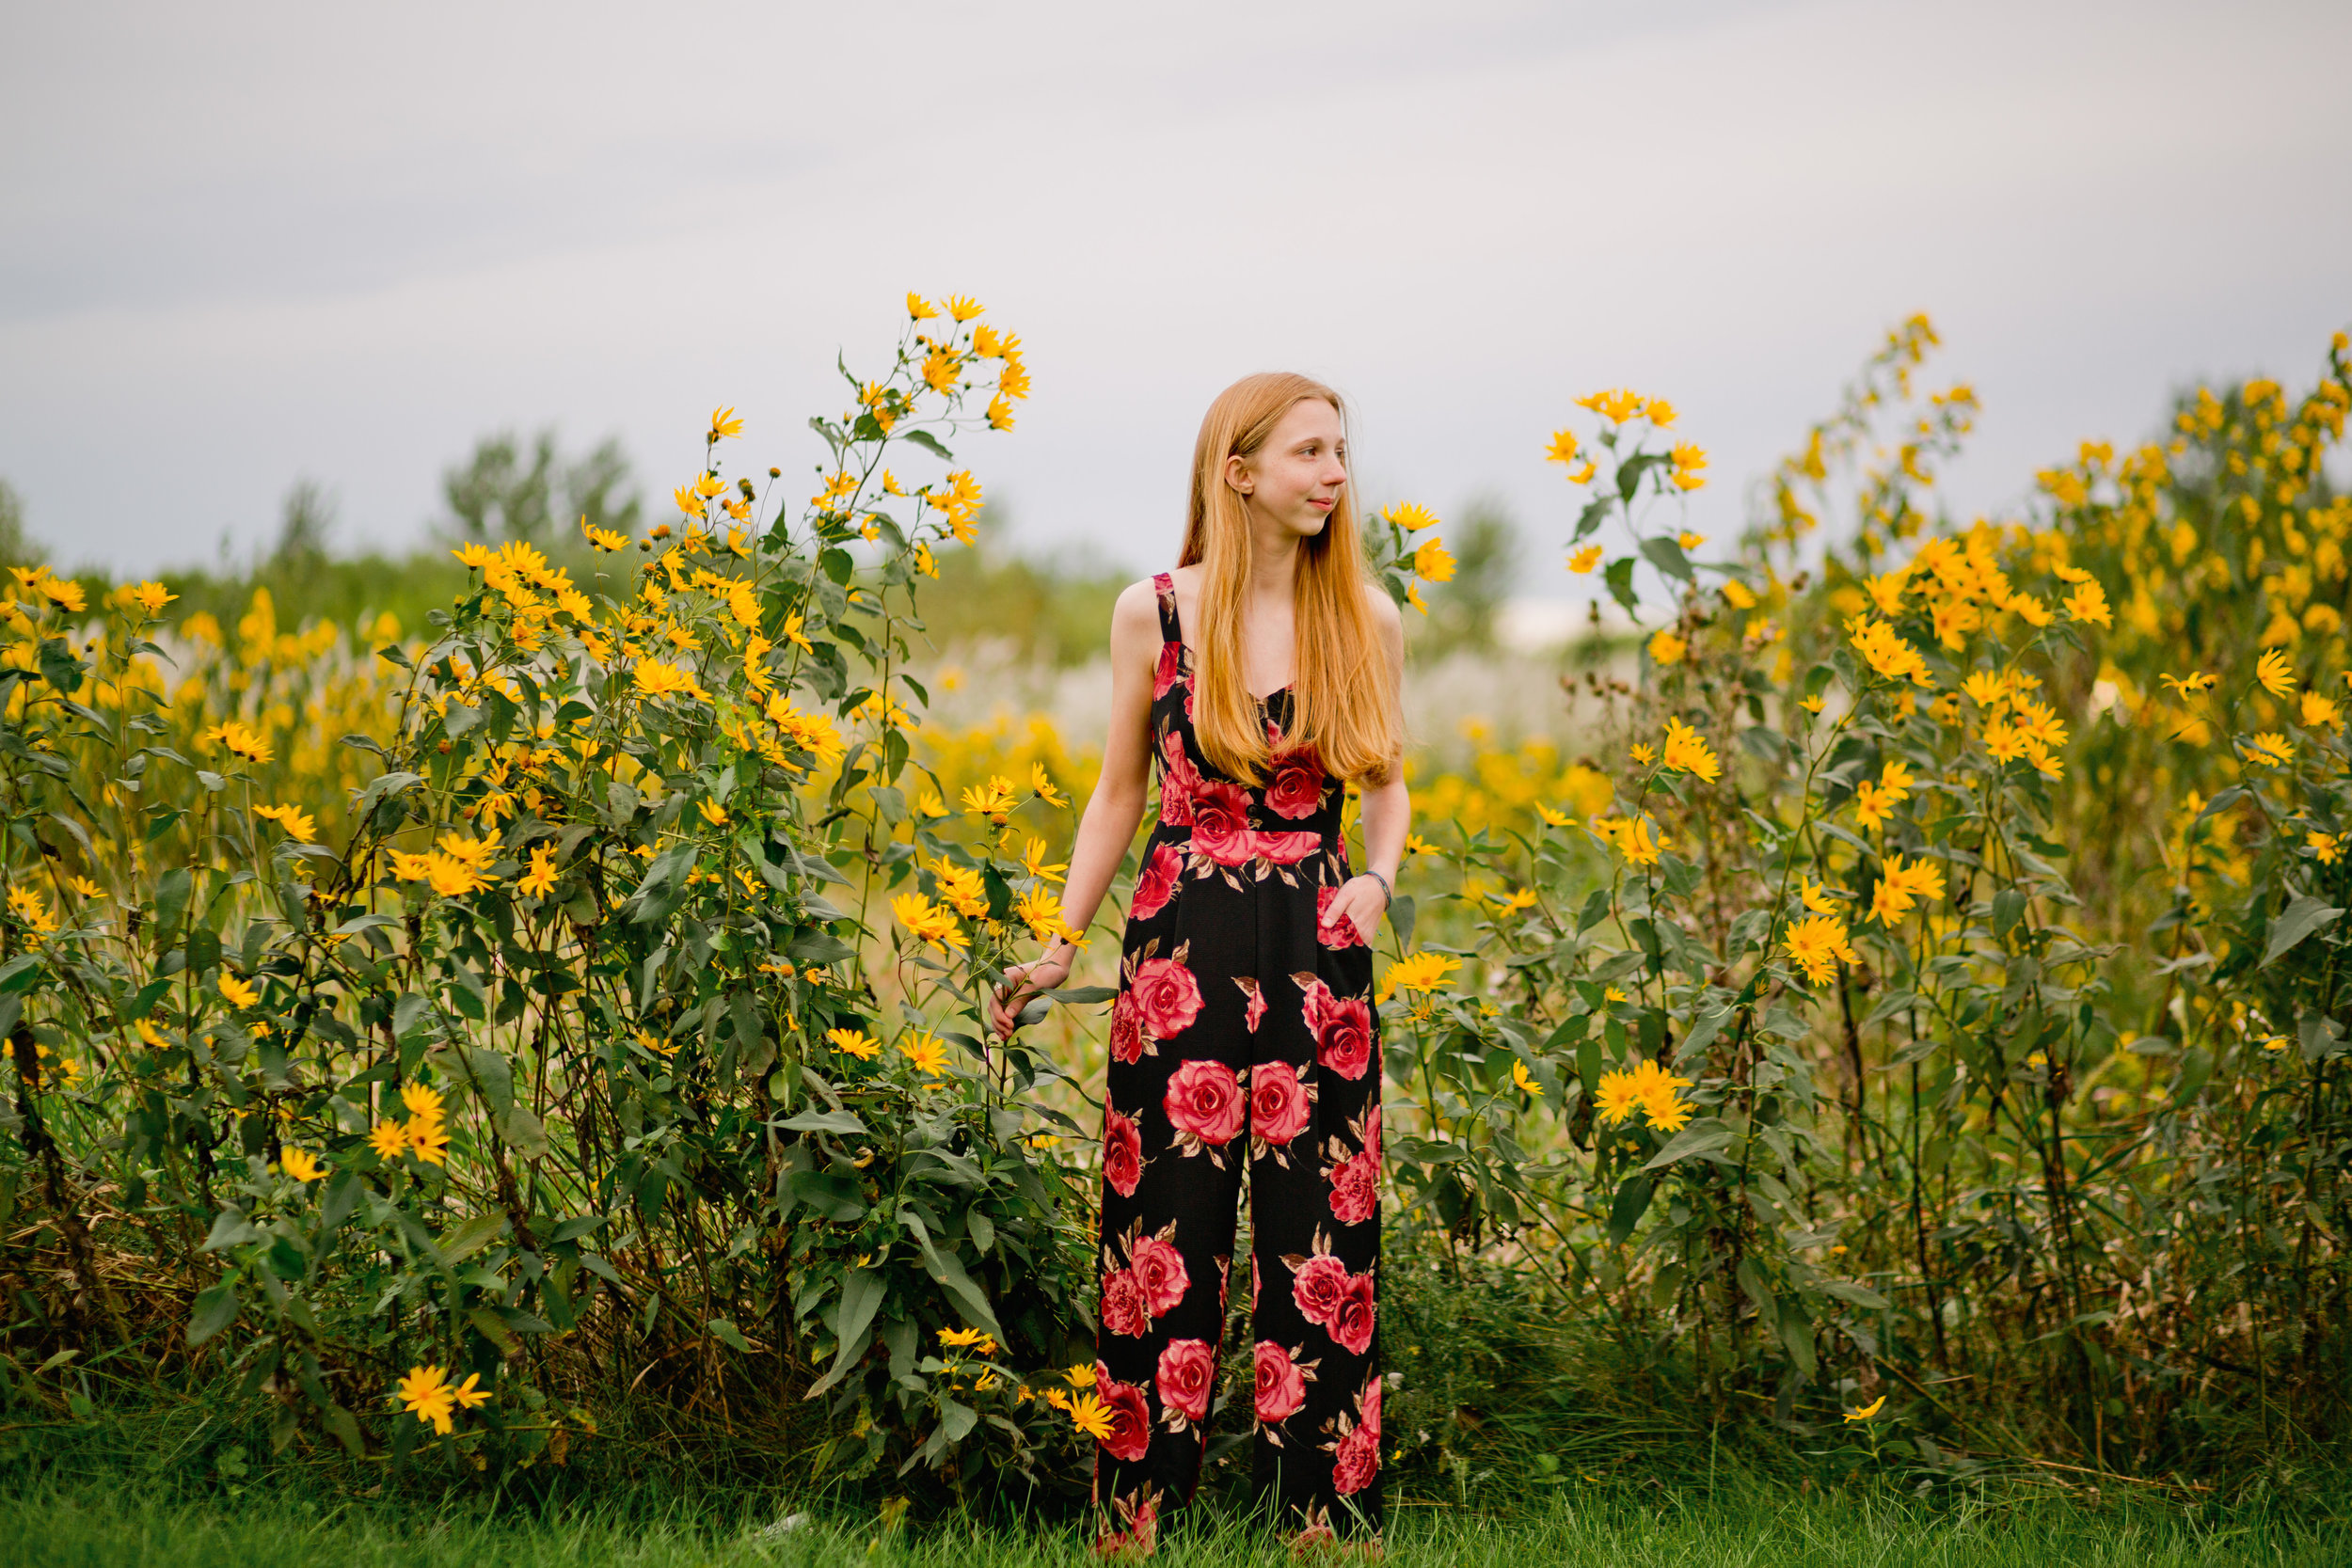 epic senior photos in Cedar Falls park with flowers and flower jumpsuit